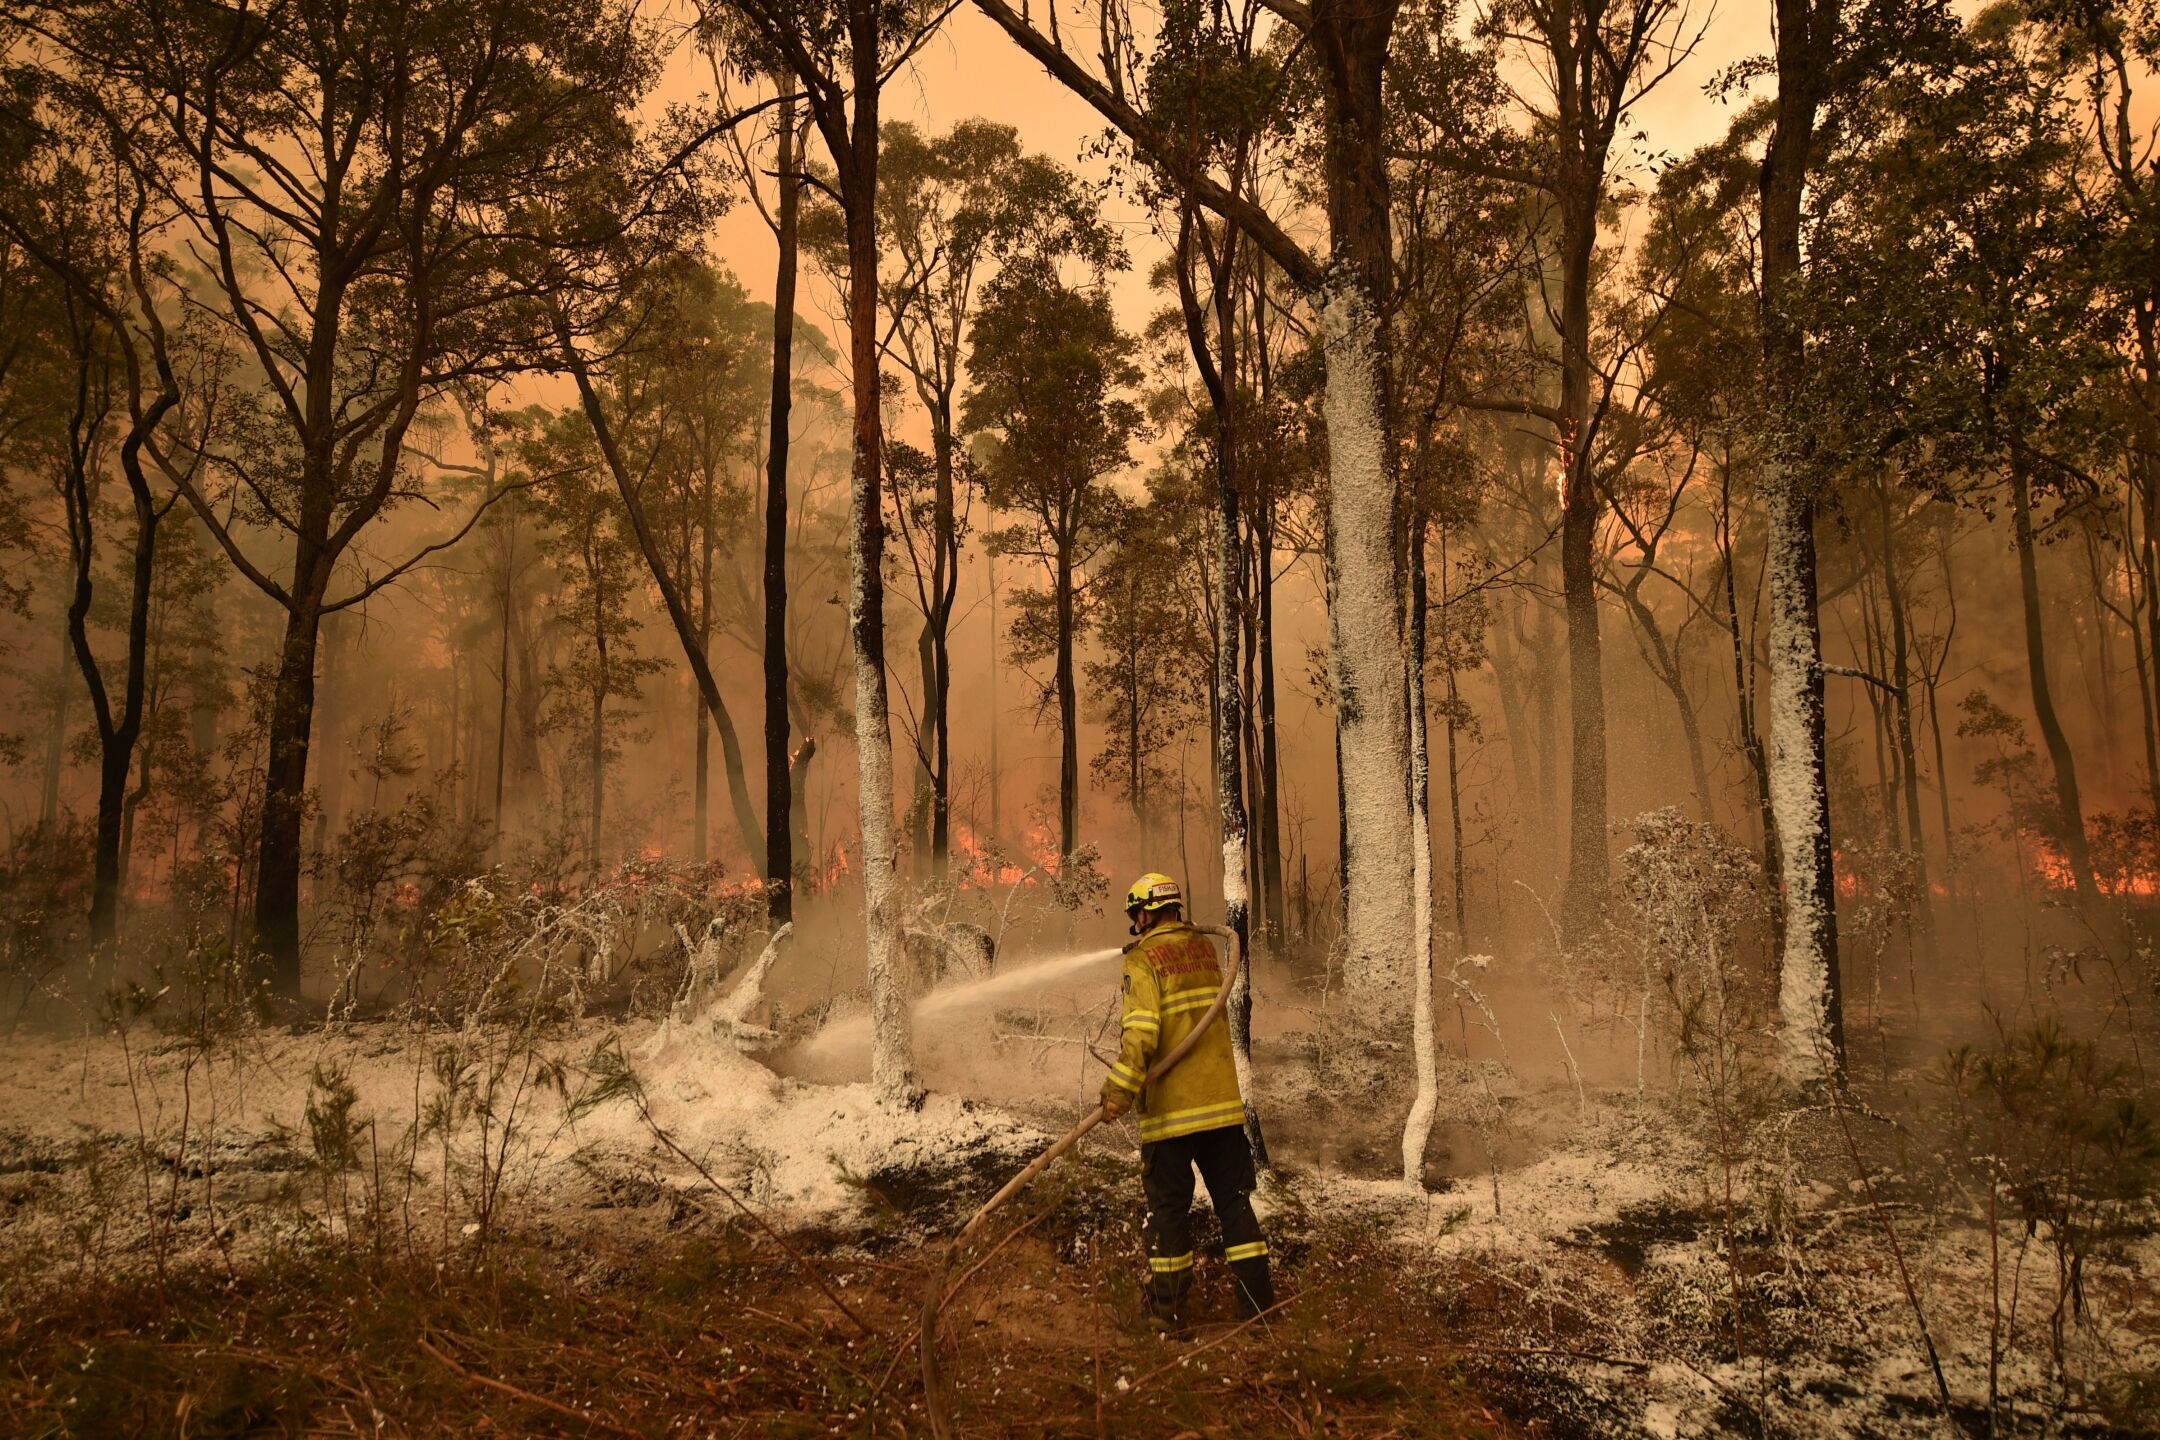 Photos: New South Wales declares a 7-day state of emergency as Australia's deadly bushfires rage